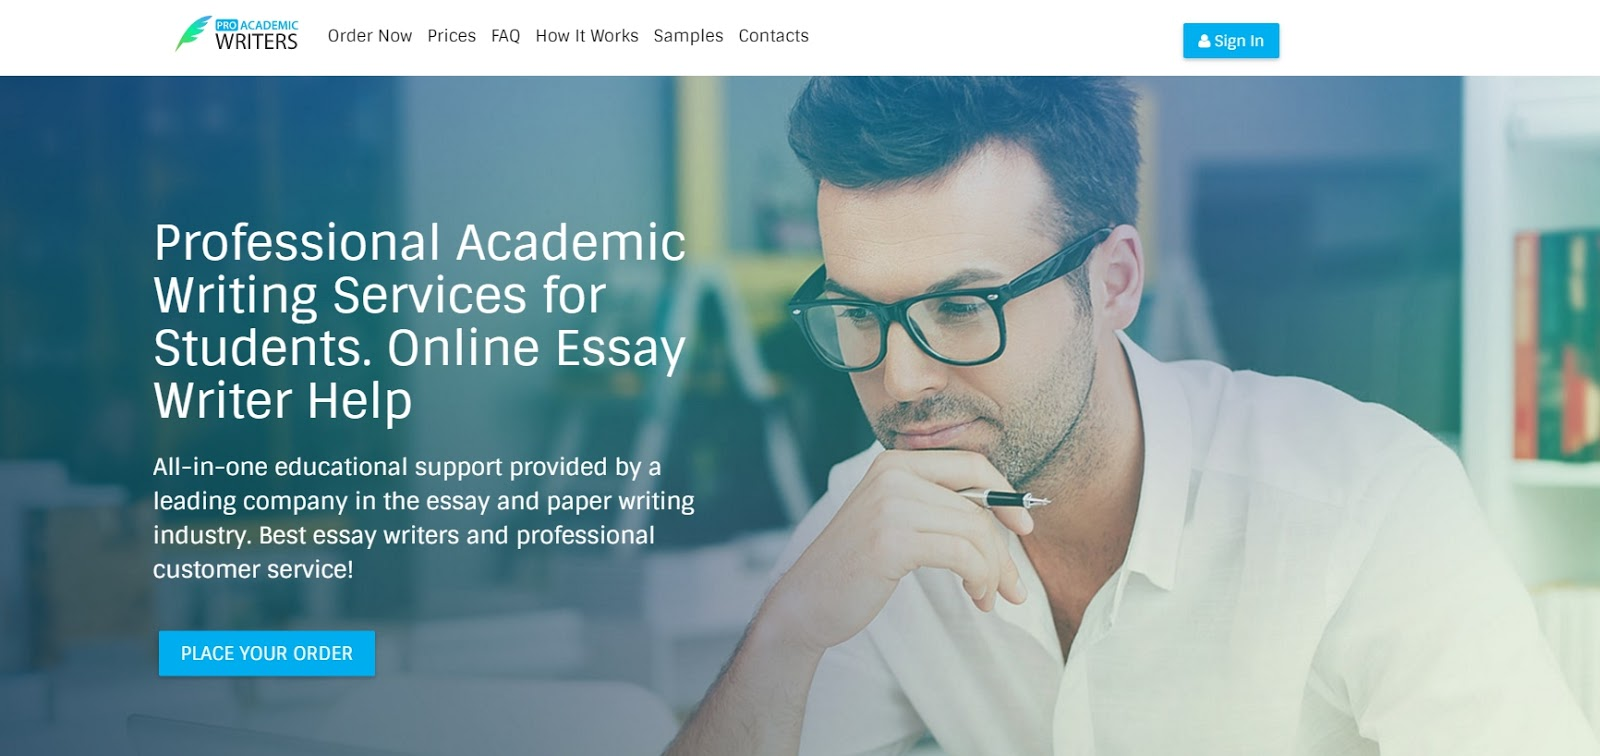 Read reviews on essay writing services before you make an order Here at  Papers Monster writing company we offer essay writing help to the students  all over